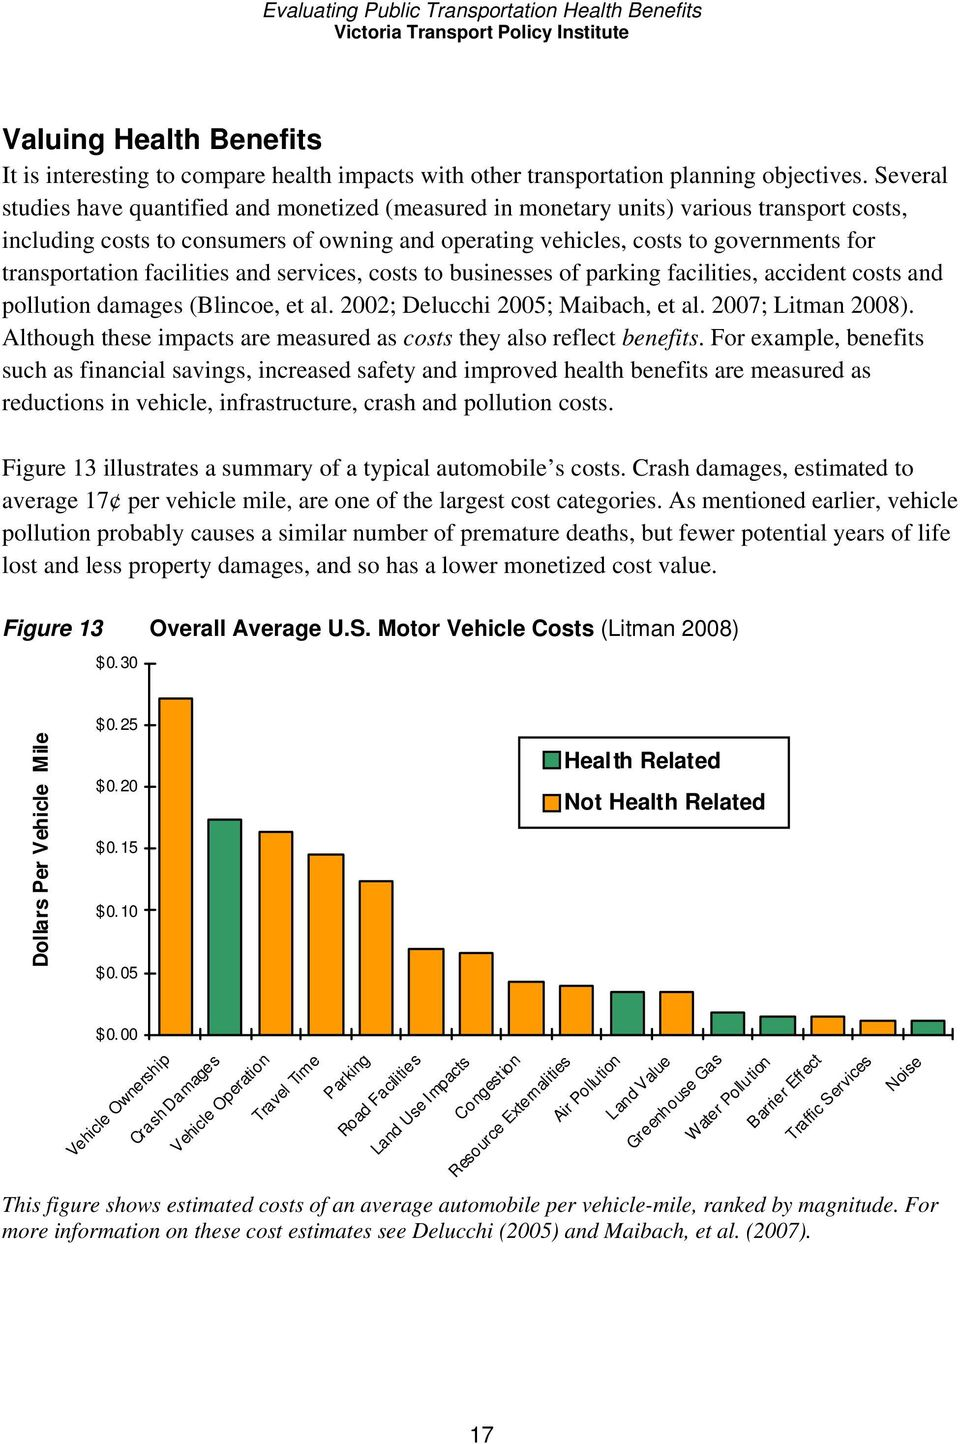 transportation facilities and services, costs to businesses of parking facilities, accident costs and pollution damages (Blincoe, et al. 2002; Delucchi 2005; Maibach, et al. 2007; Litman 2008).